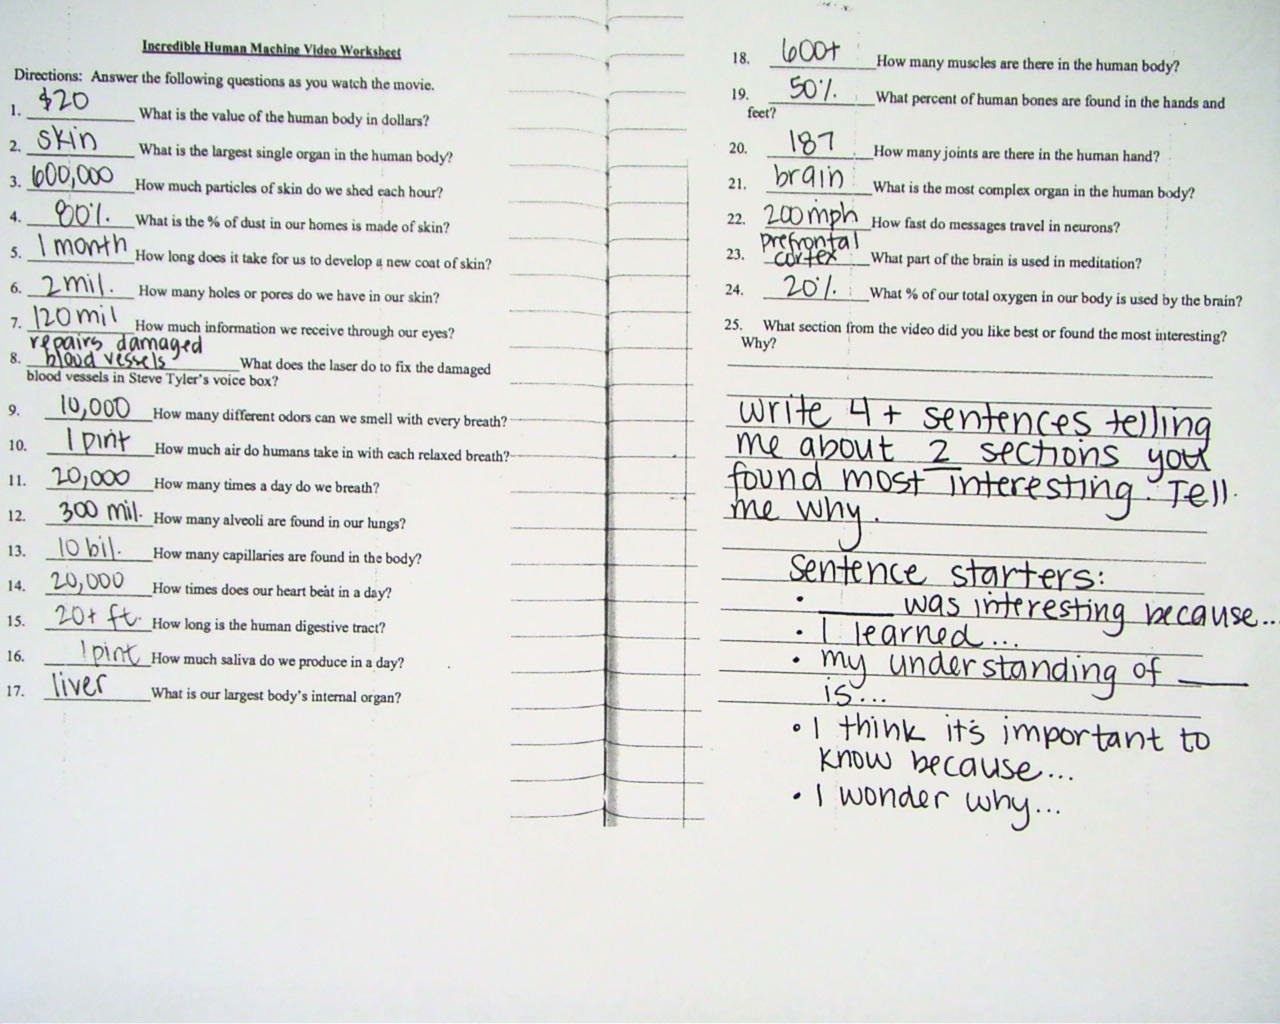 Incredible Human Machine Worksheet New the Incredible Human Machine Worksheets Answers